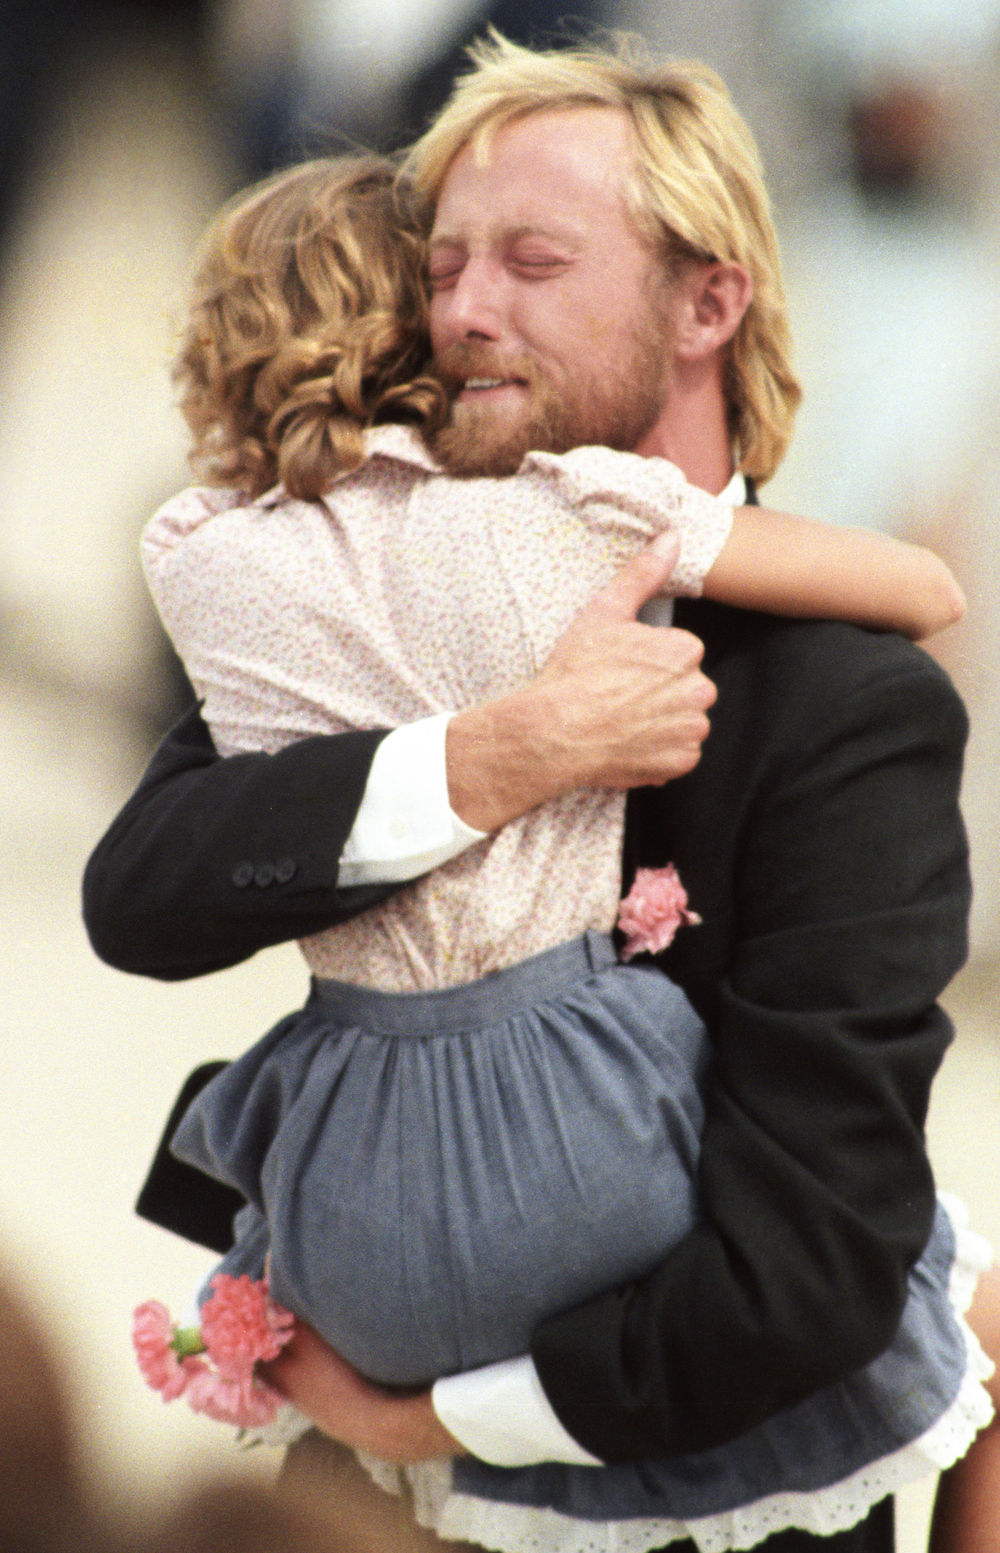 Former TWA flight 847 hostage Victor Amburgy hugs an unidentified girl after his arrival at Andrews Air Force Base. © Bill Frakes/Straw Hat Visuals